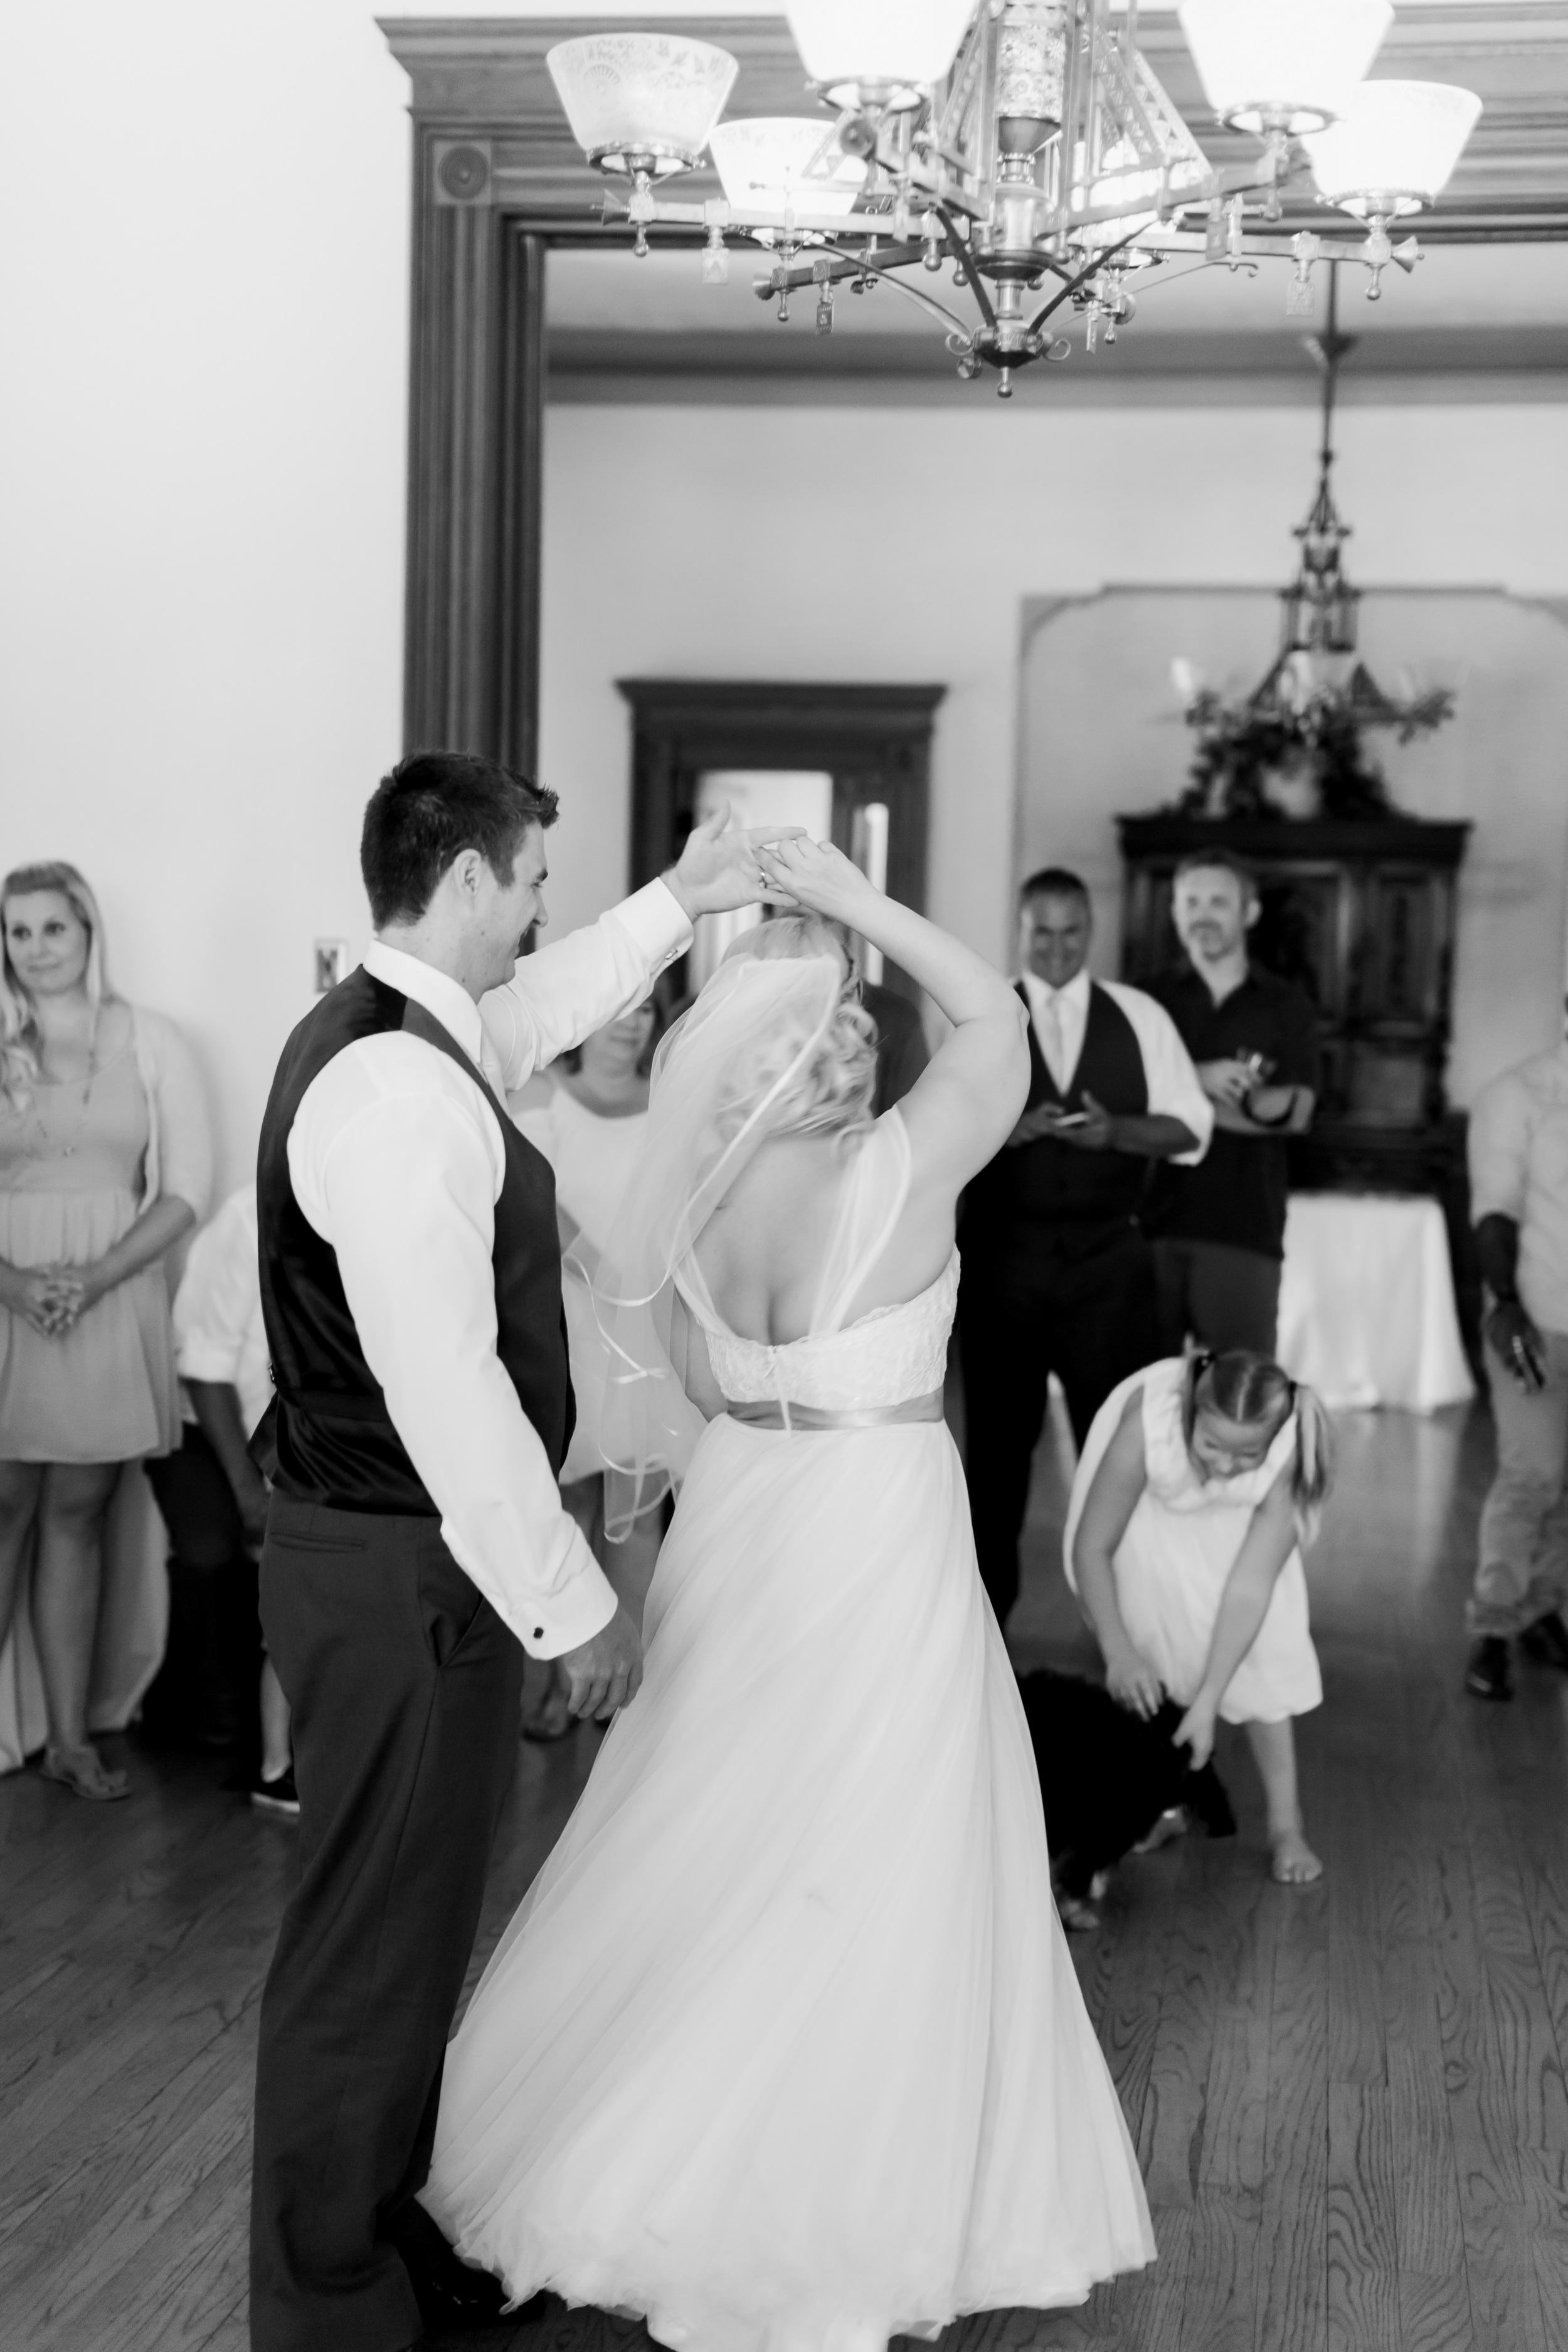 southern-inspired-wedding-at-ravenswood-historic-site-5326.jpg